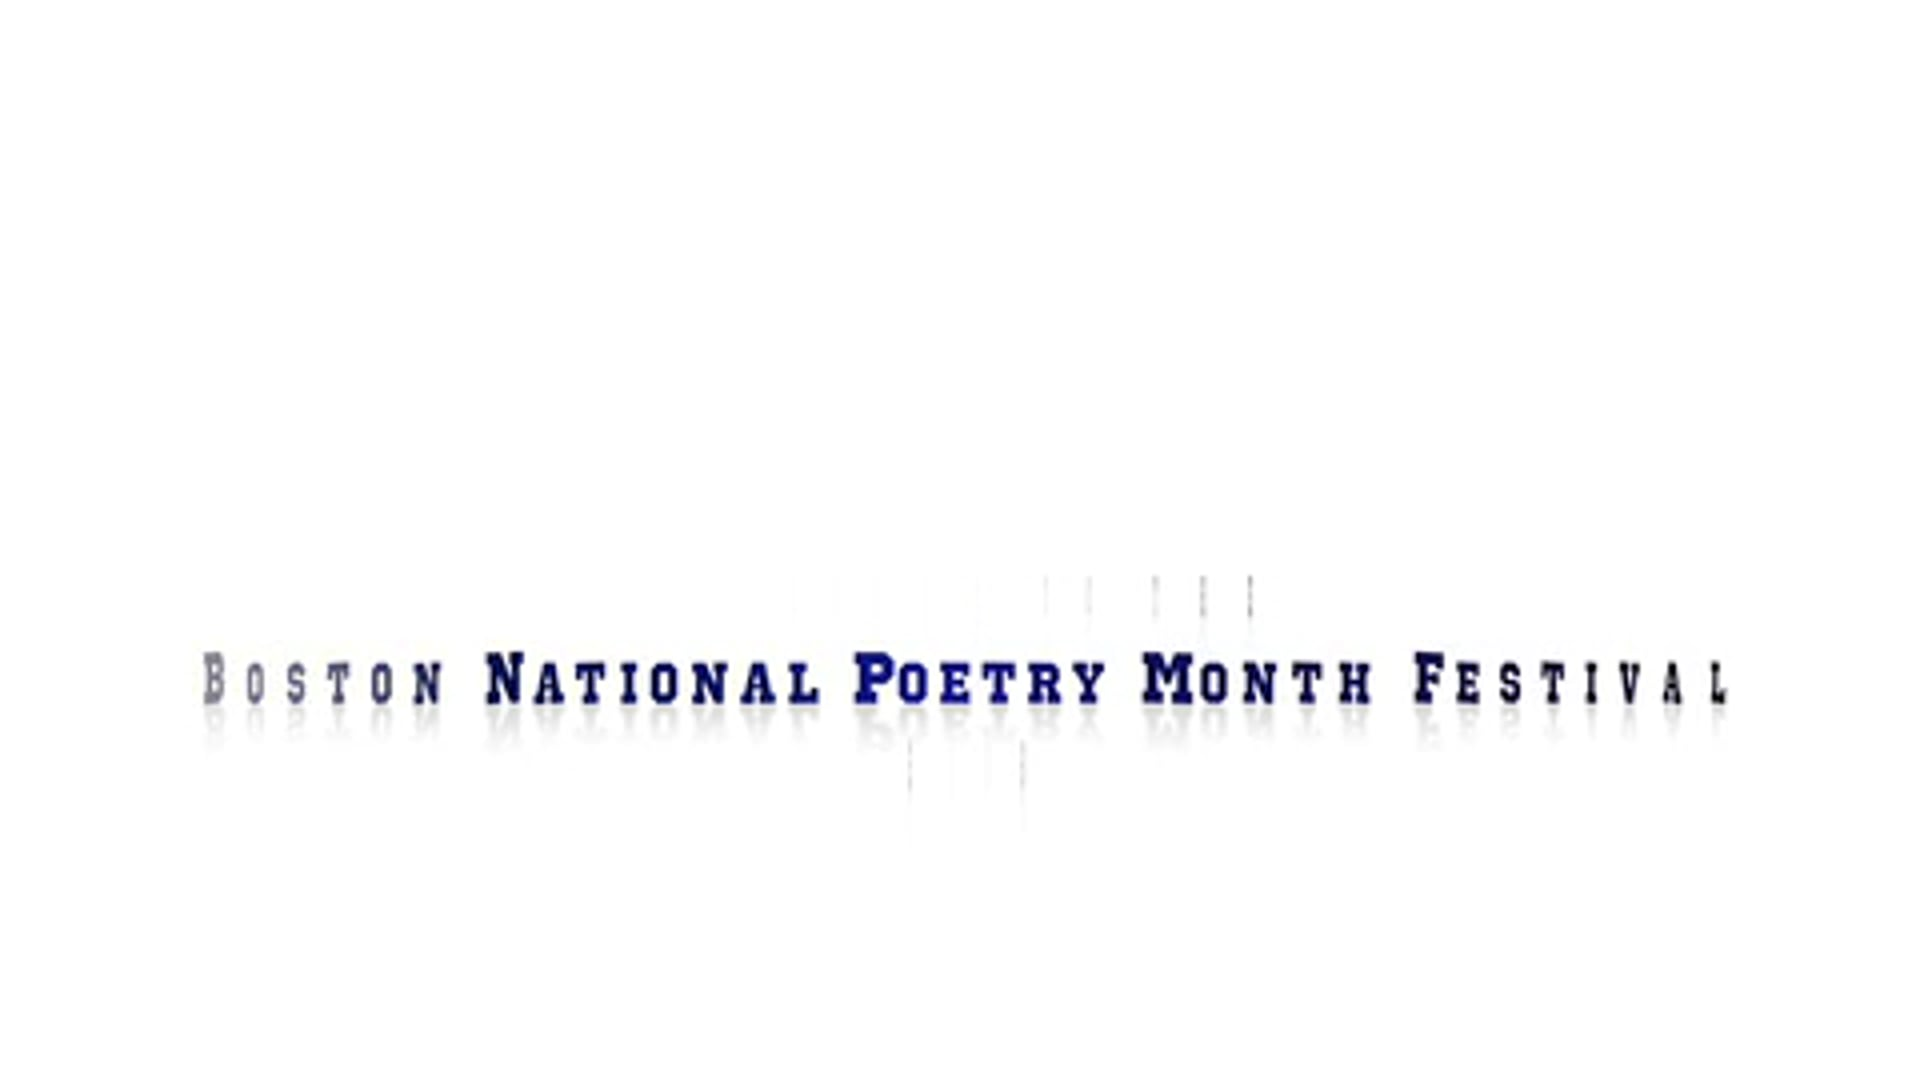 Boston National Poetry Month Festival - 2016 -- Executive Produce: Lucy Holstedt